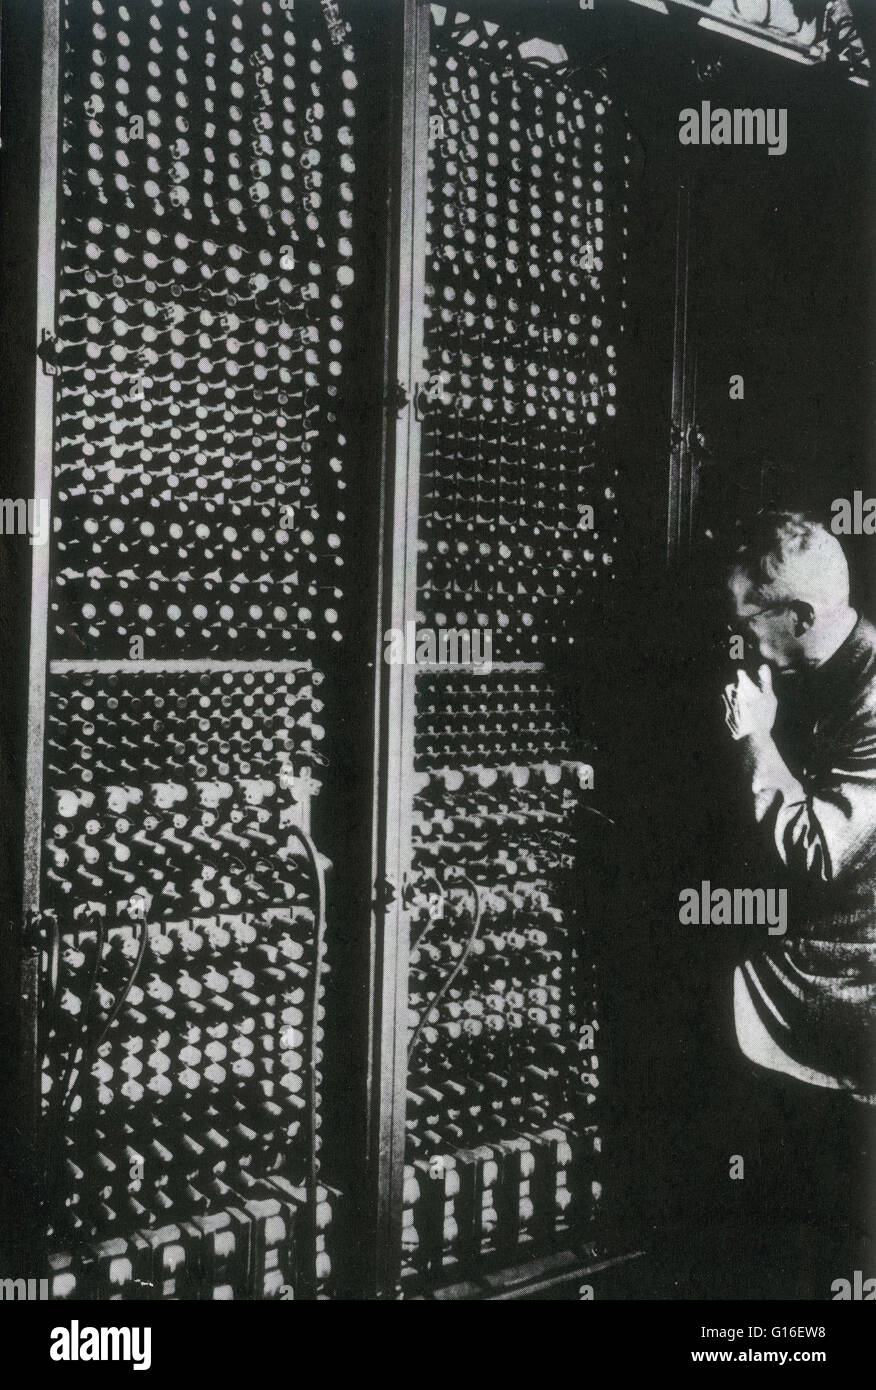 Pictures of the eniac computer Cached